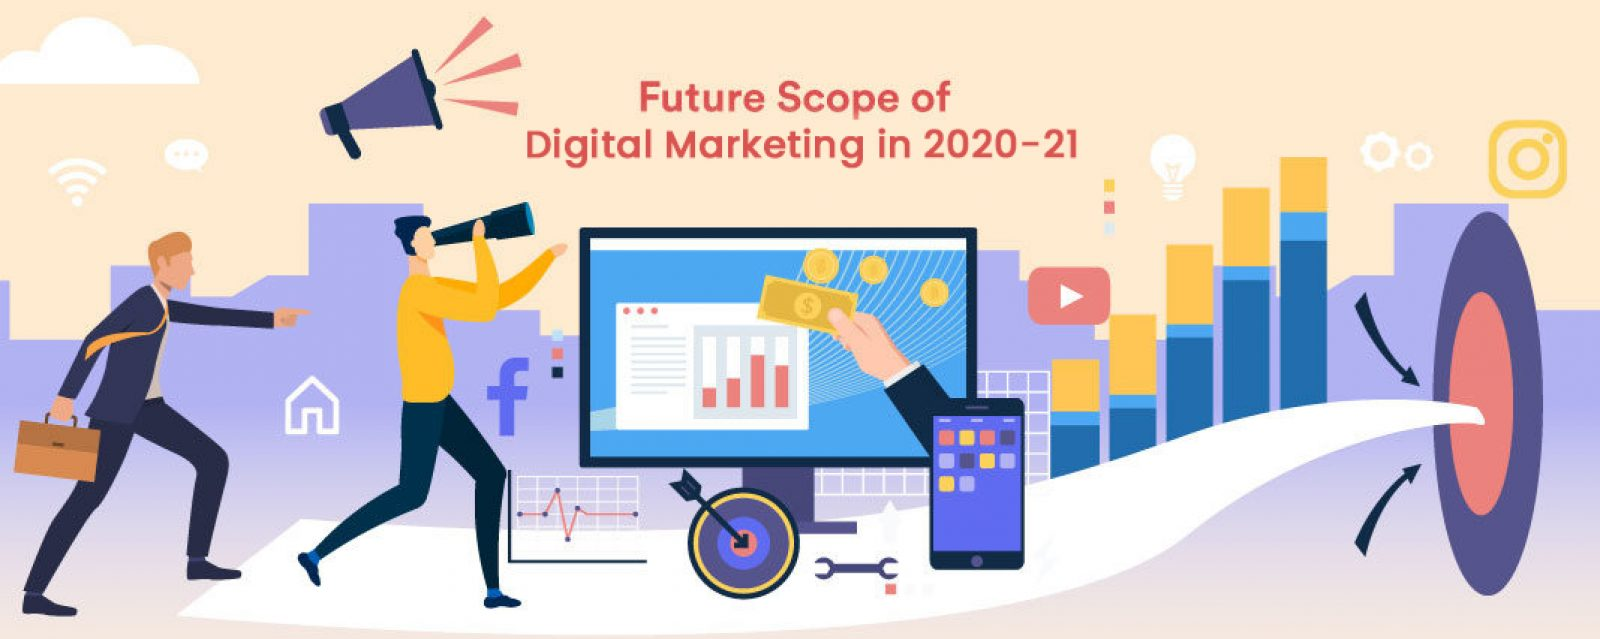 How is Digital Marketing a best career option for 2020-21?